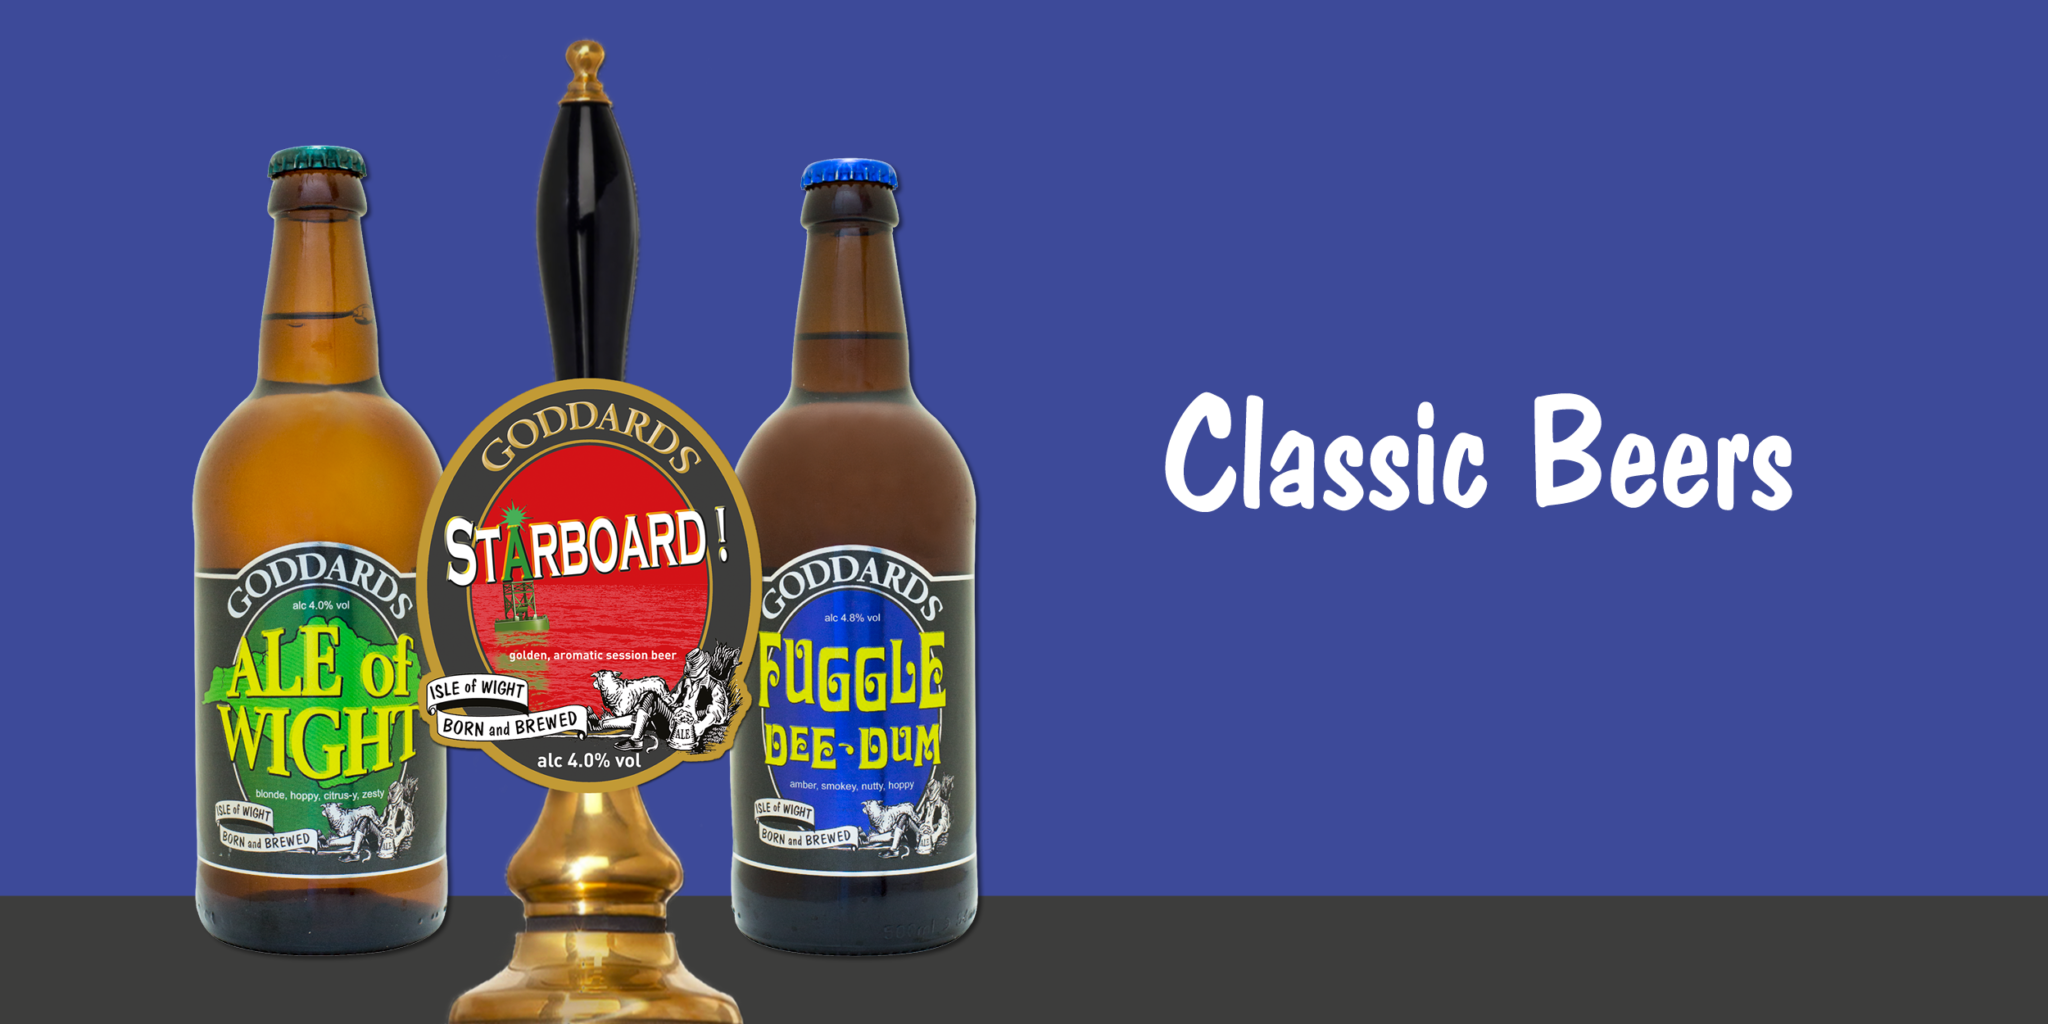 Classic Beers